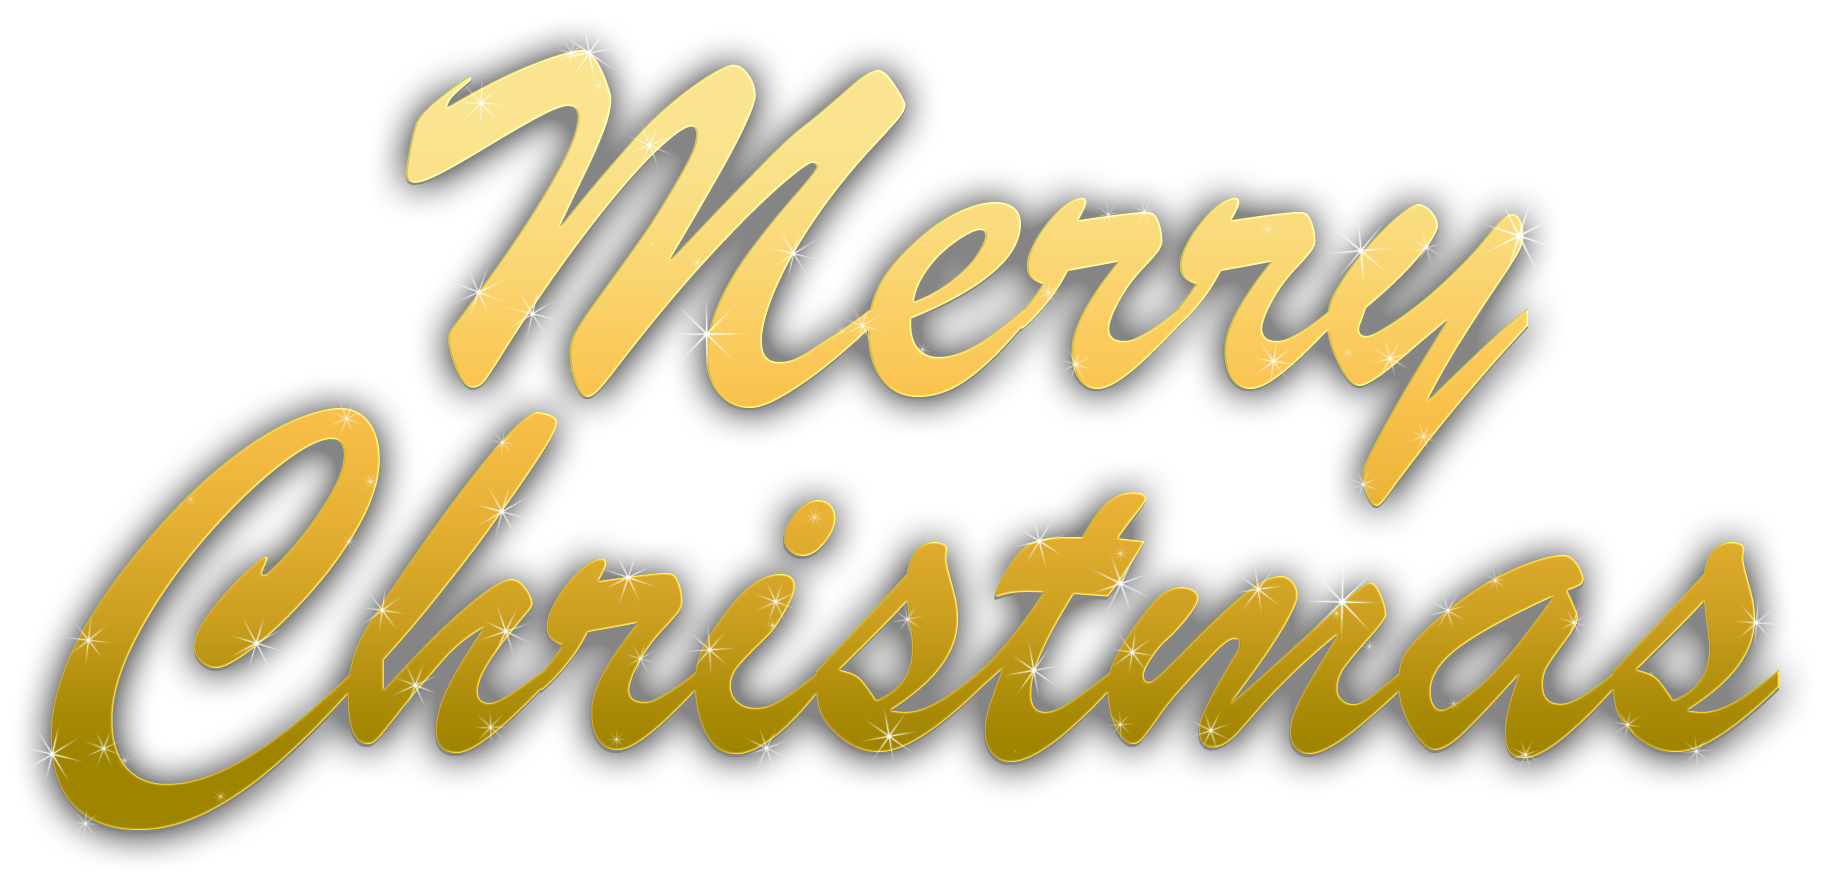 Merry Christmas Png - Merry Christmas Text PNG